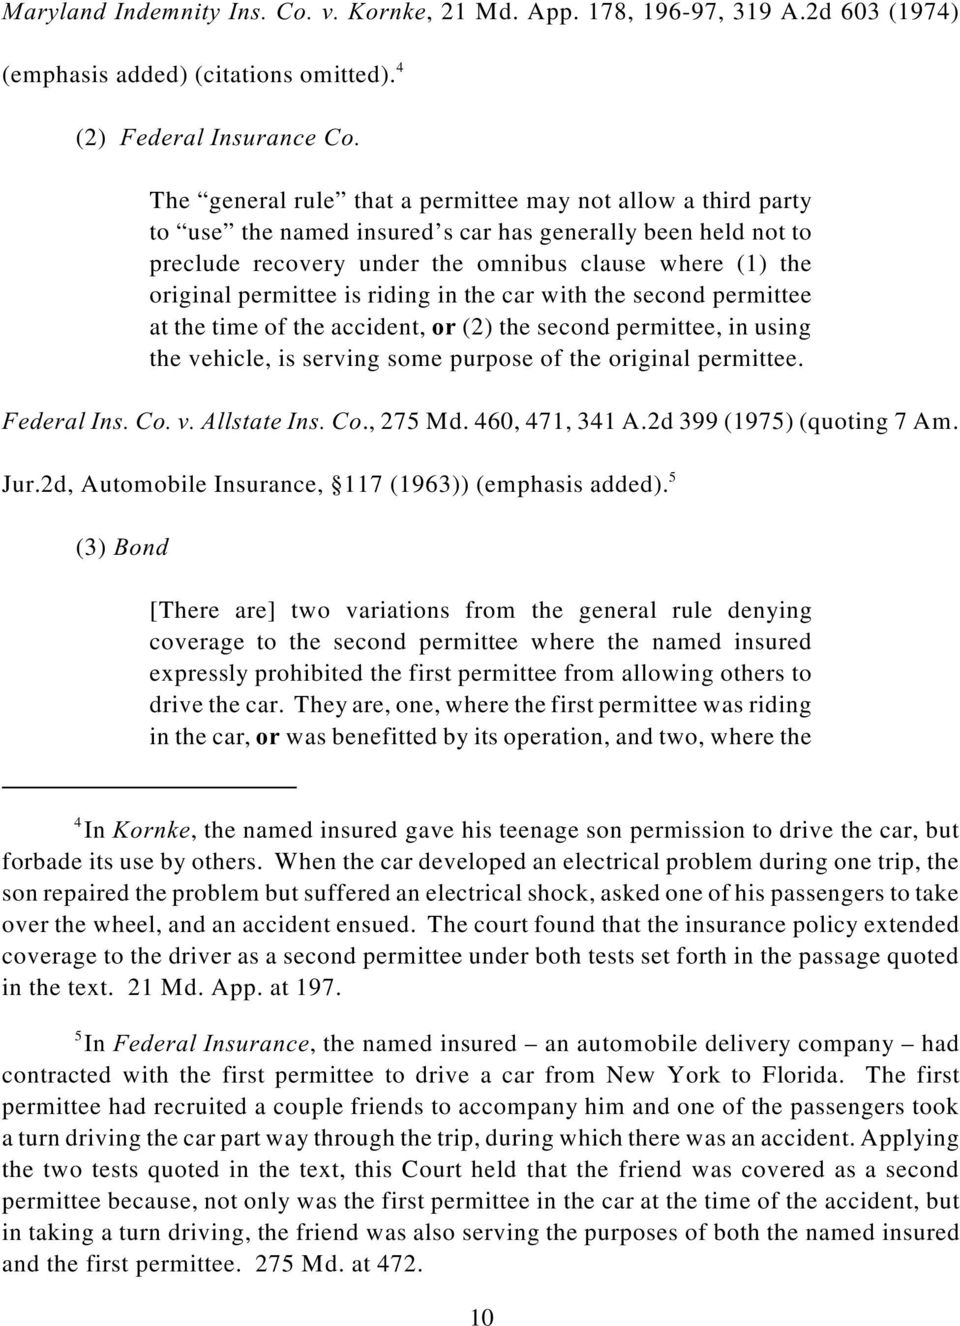 is riding in the car with the second permittee at the time of the accident, or (2) the second permittee, in using the vehicle, is serving some purpose of the original permittee. Federal Ins. Co. v. Allstate Ins.